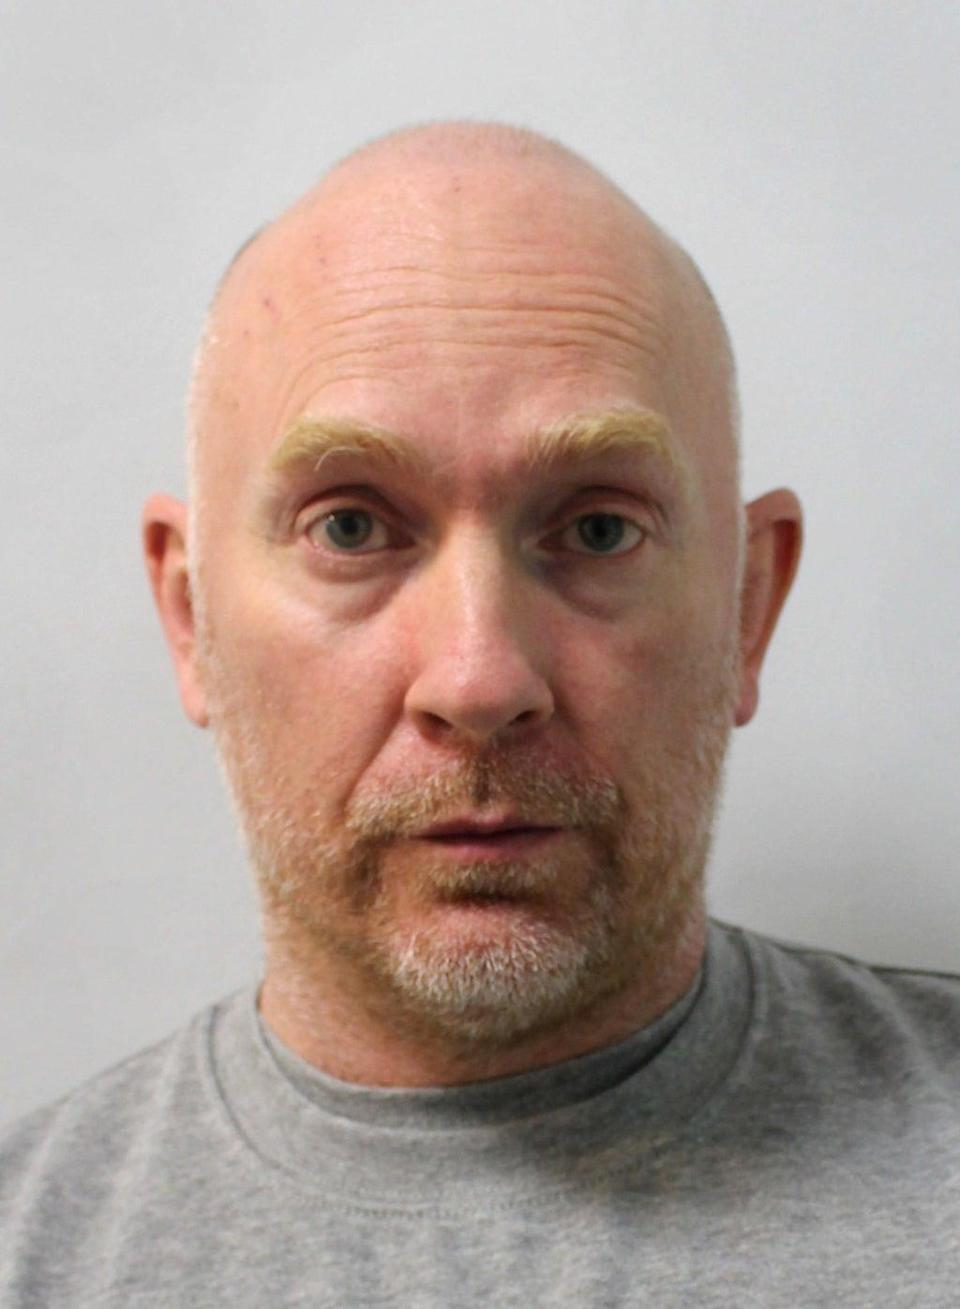 Wayne Couzens, 48, has admitted the rape and murder of Sarah Everard (Met Police/PA) (PA Media)